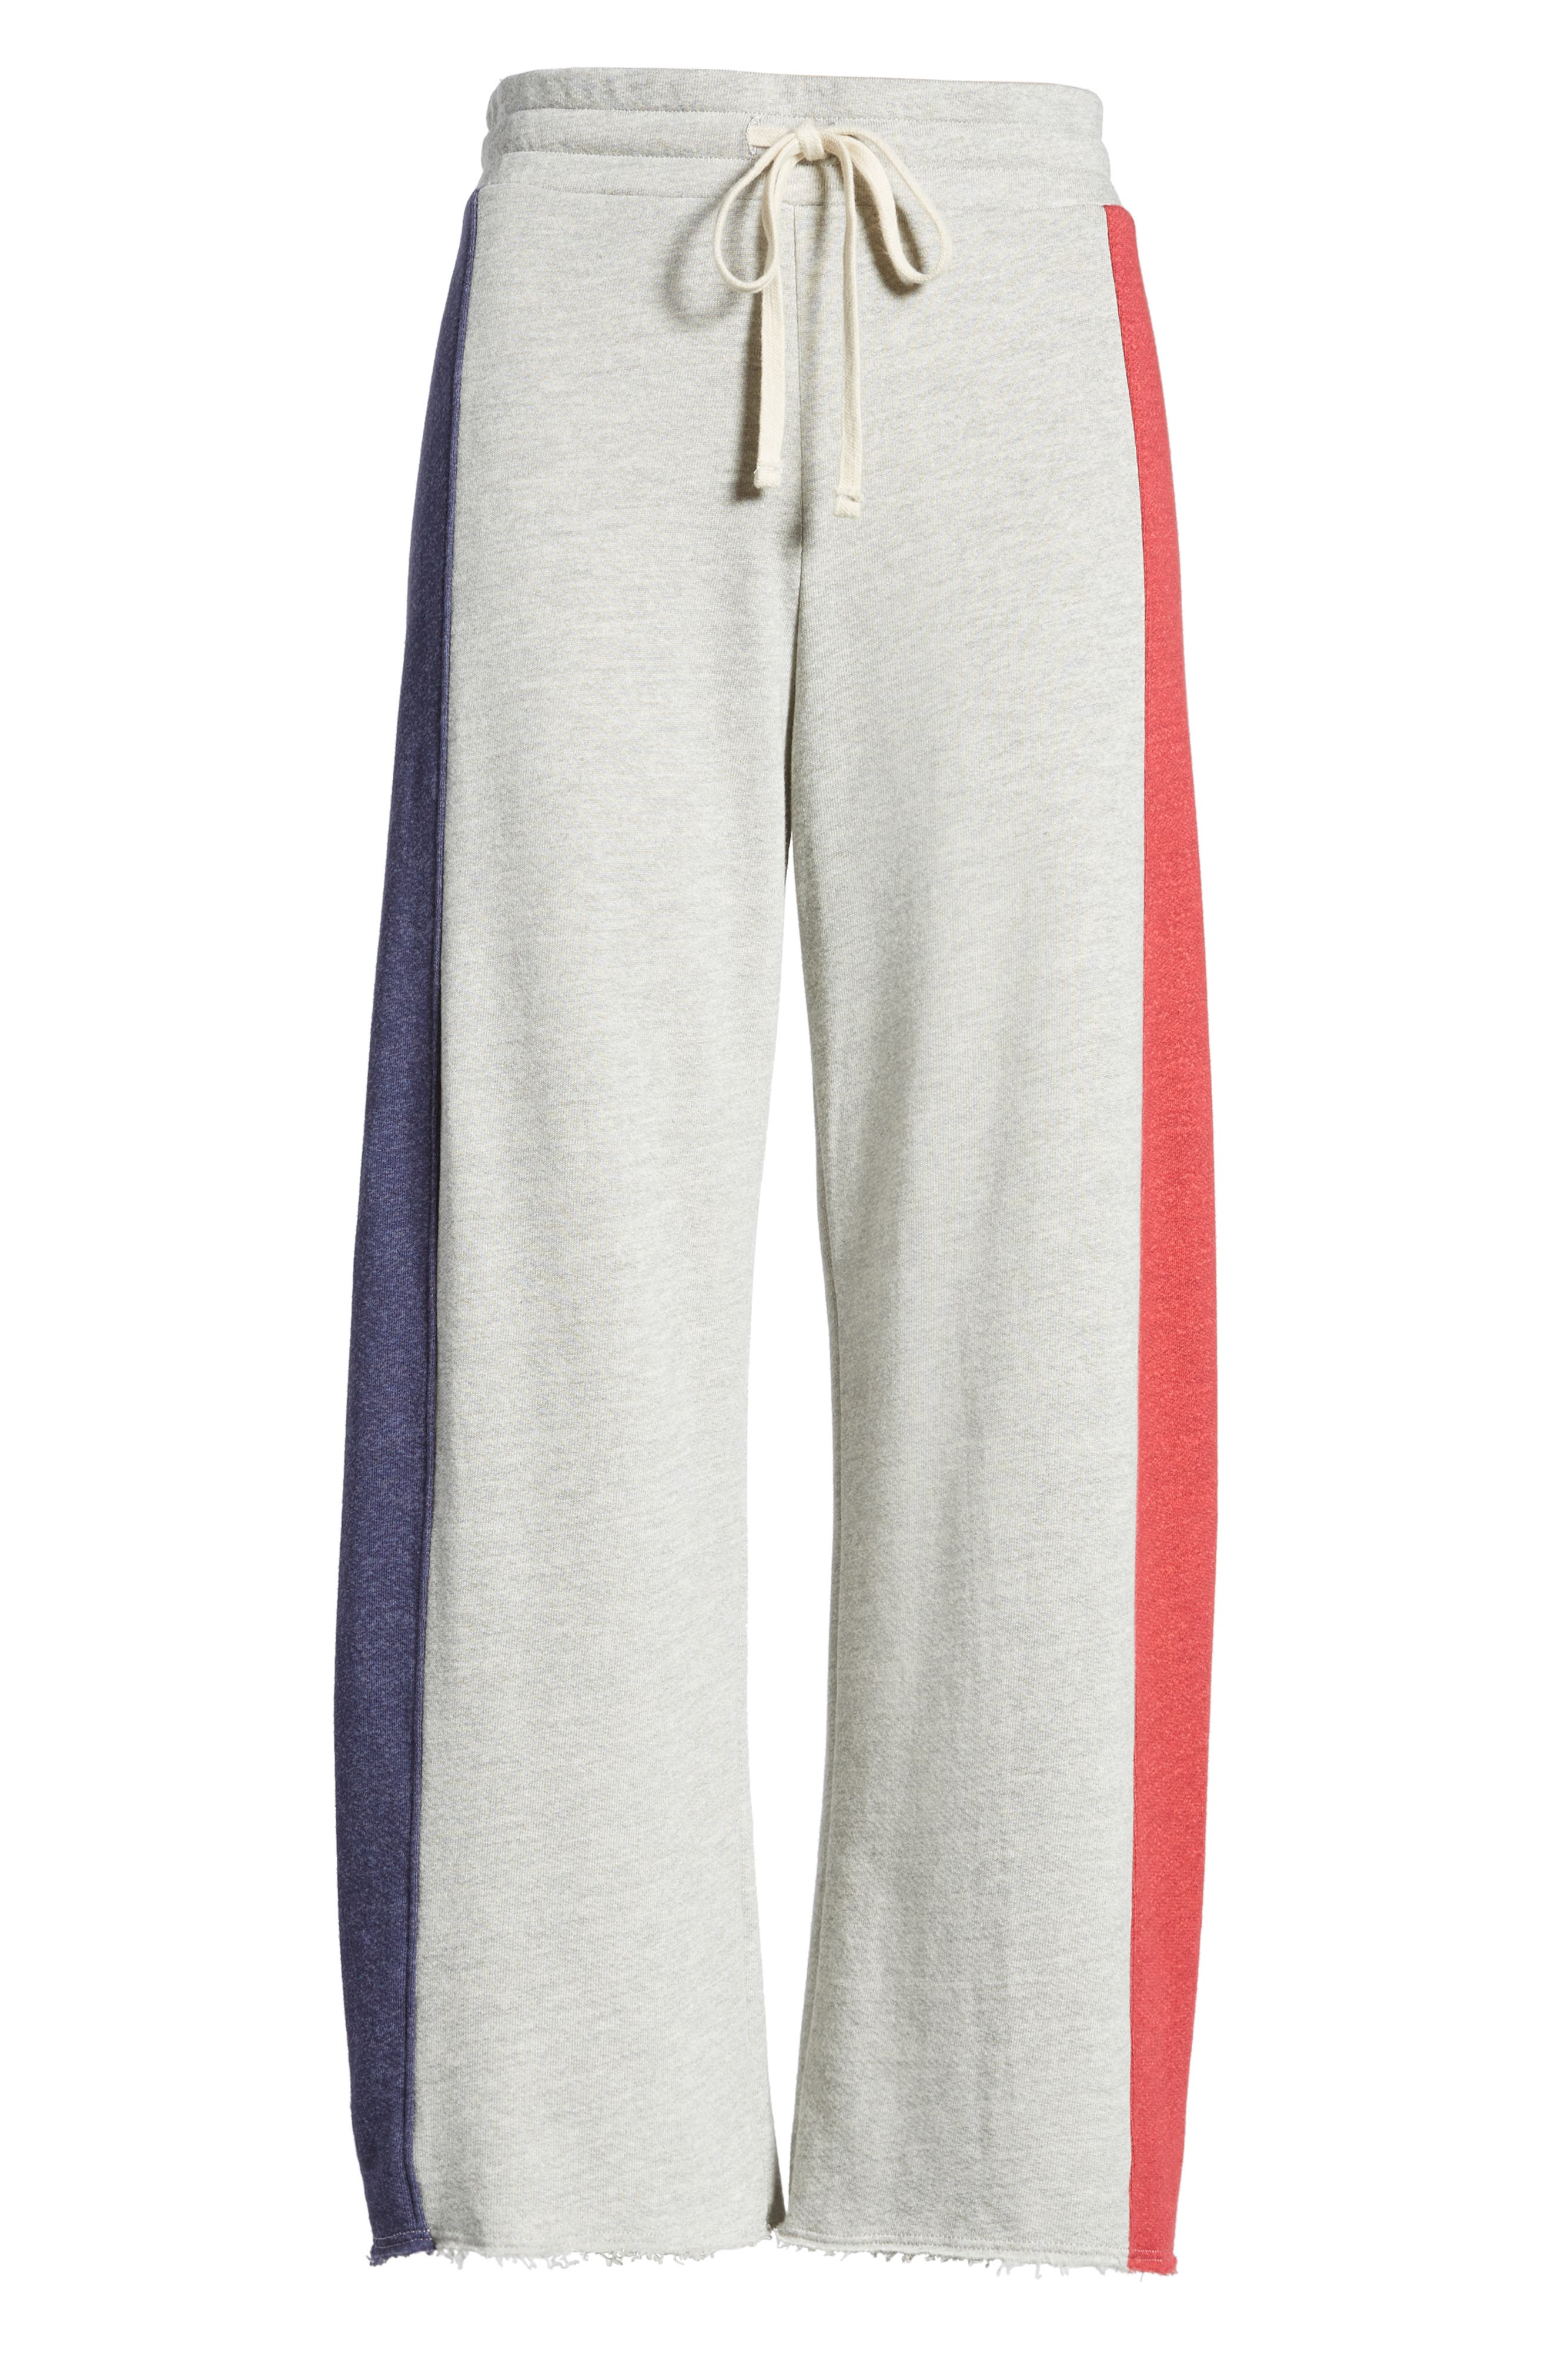 Terry Colorblock Sweatpants,                             Alternate thumbnail 7, color,                             Heather Grey